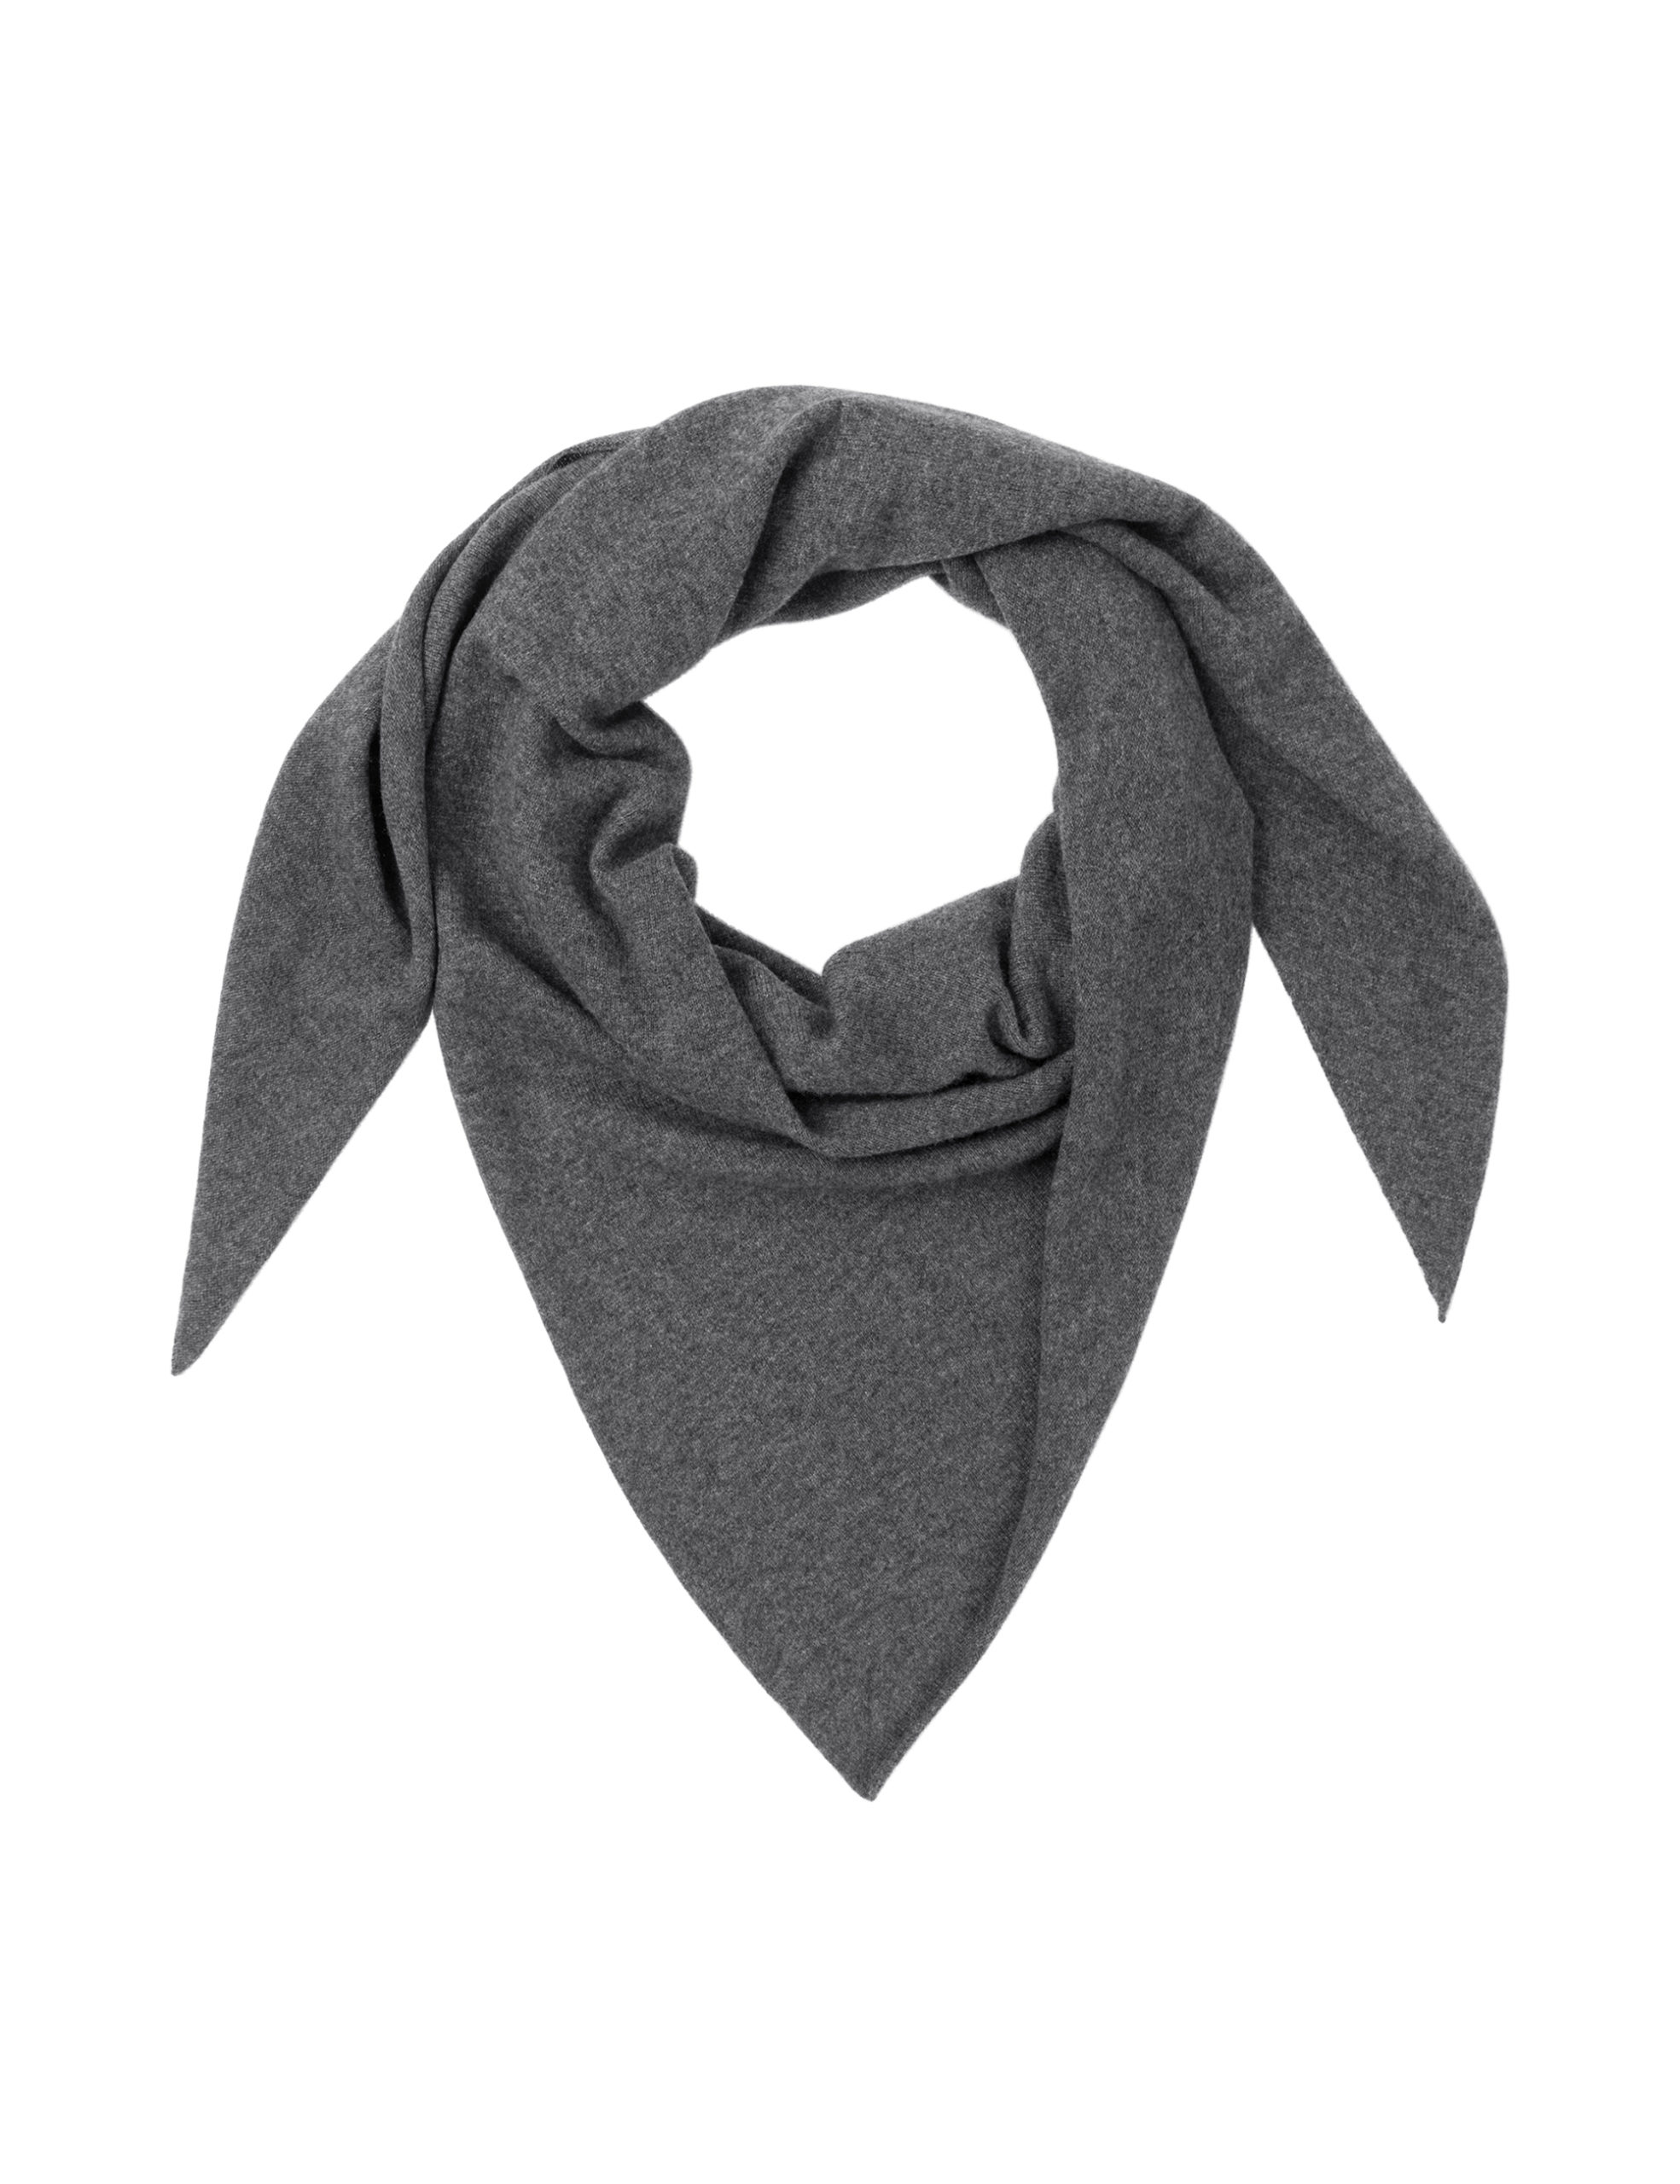 TRIANGLE SCARF – Charcoal